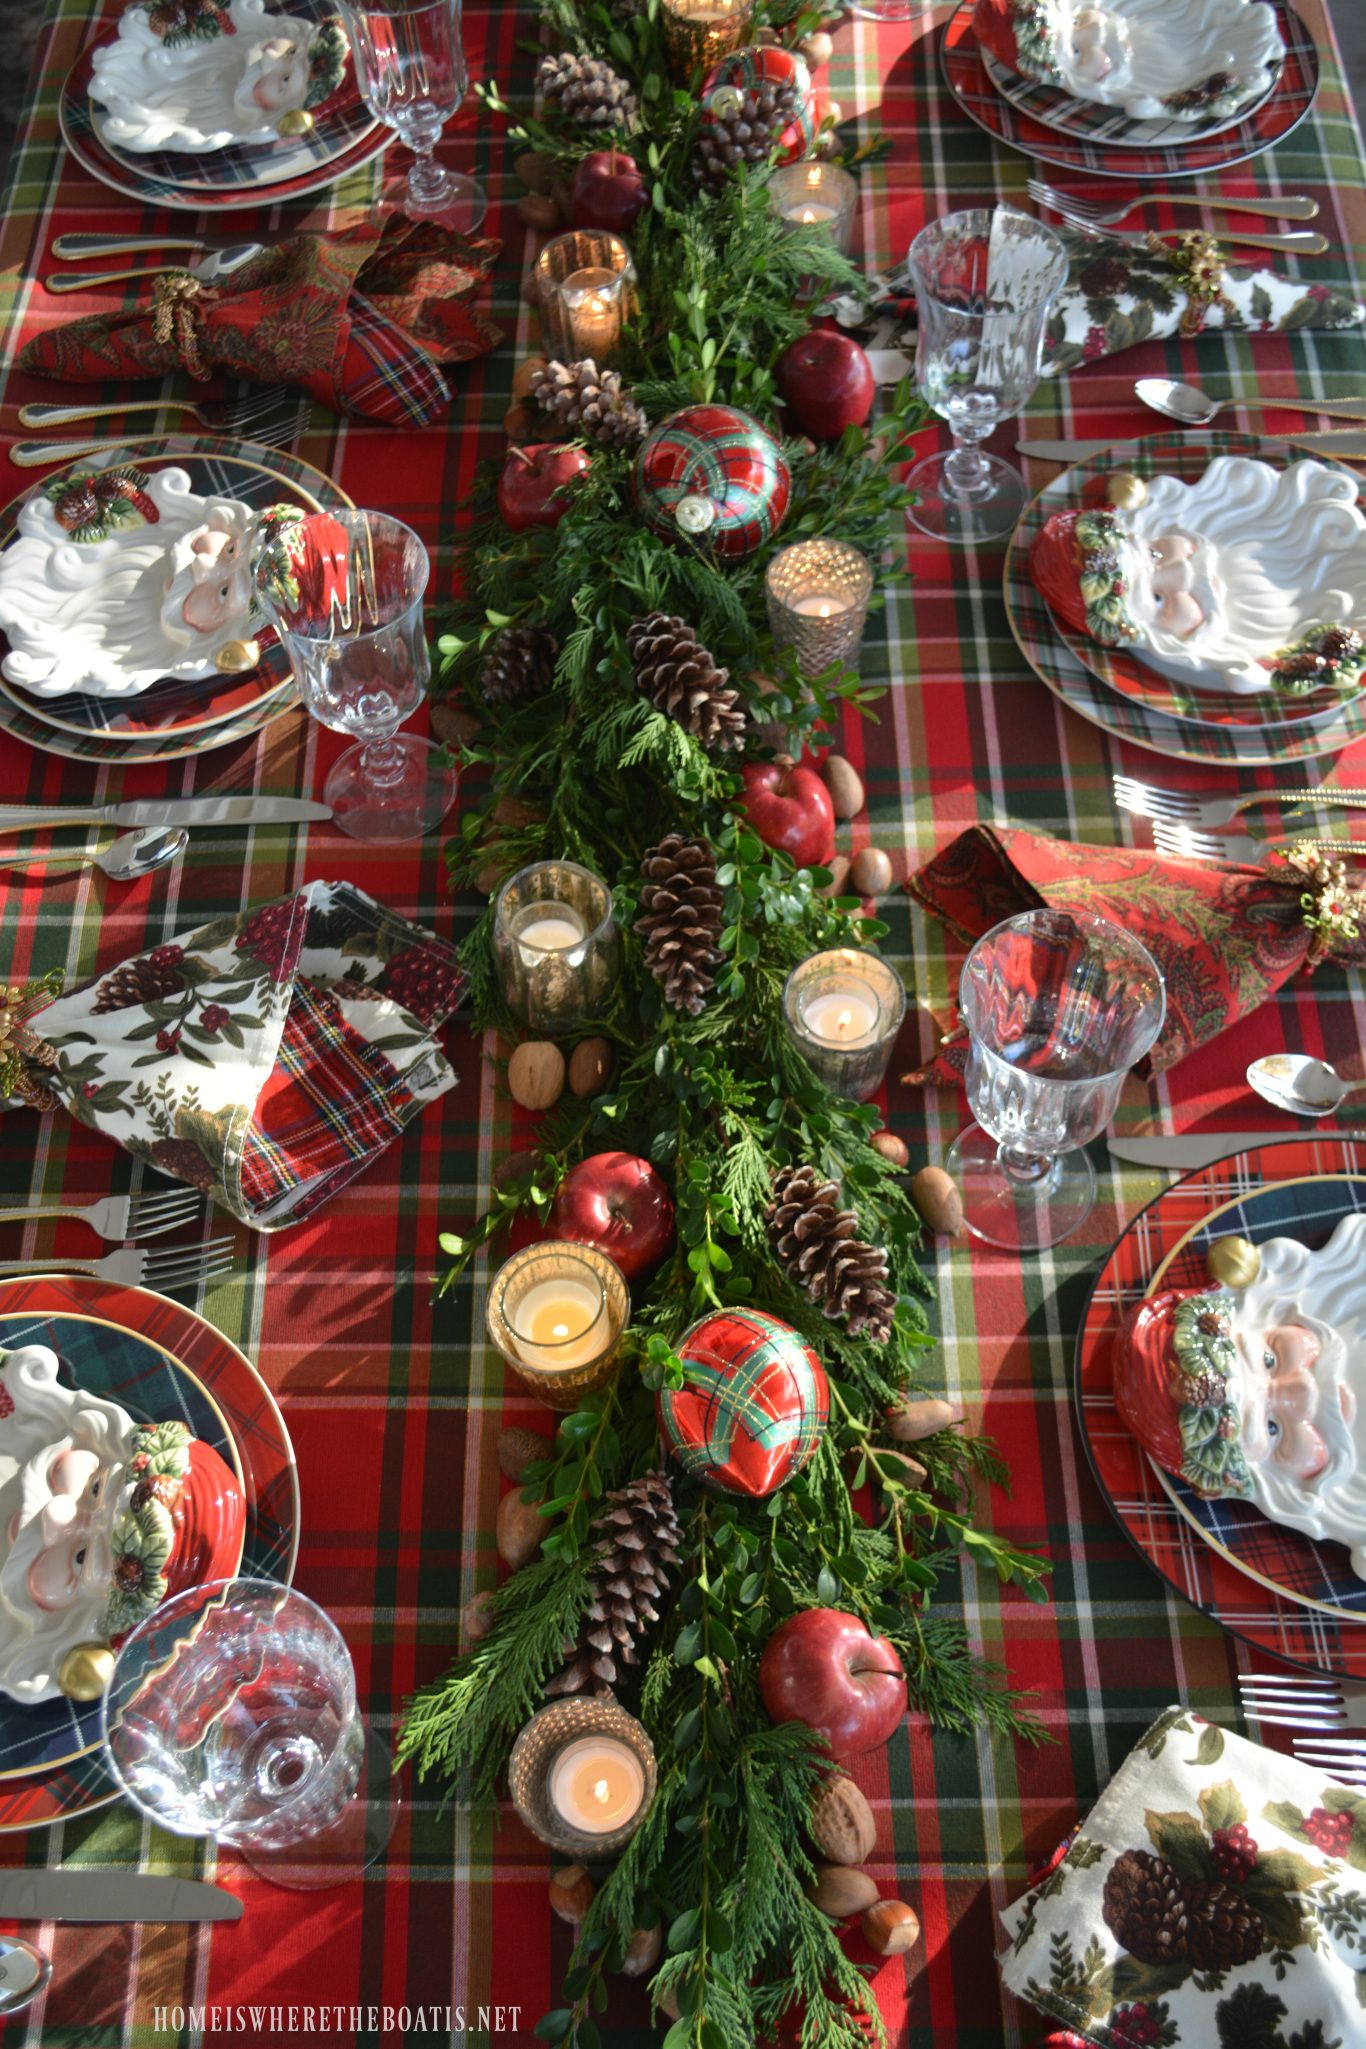 Plaid Tidings A Christmas Table With St Nick And A Natural Evergreen Table Runner Christmas Table Decorations Christmas Table Settings Christmas Centerpieces